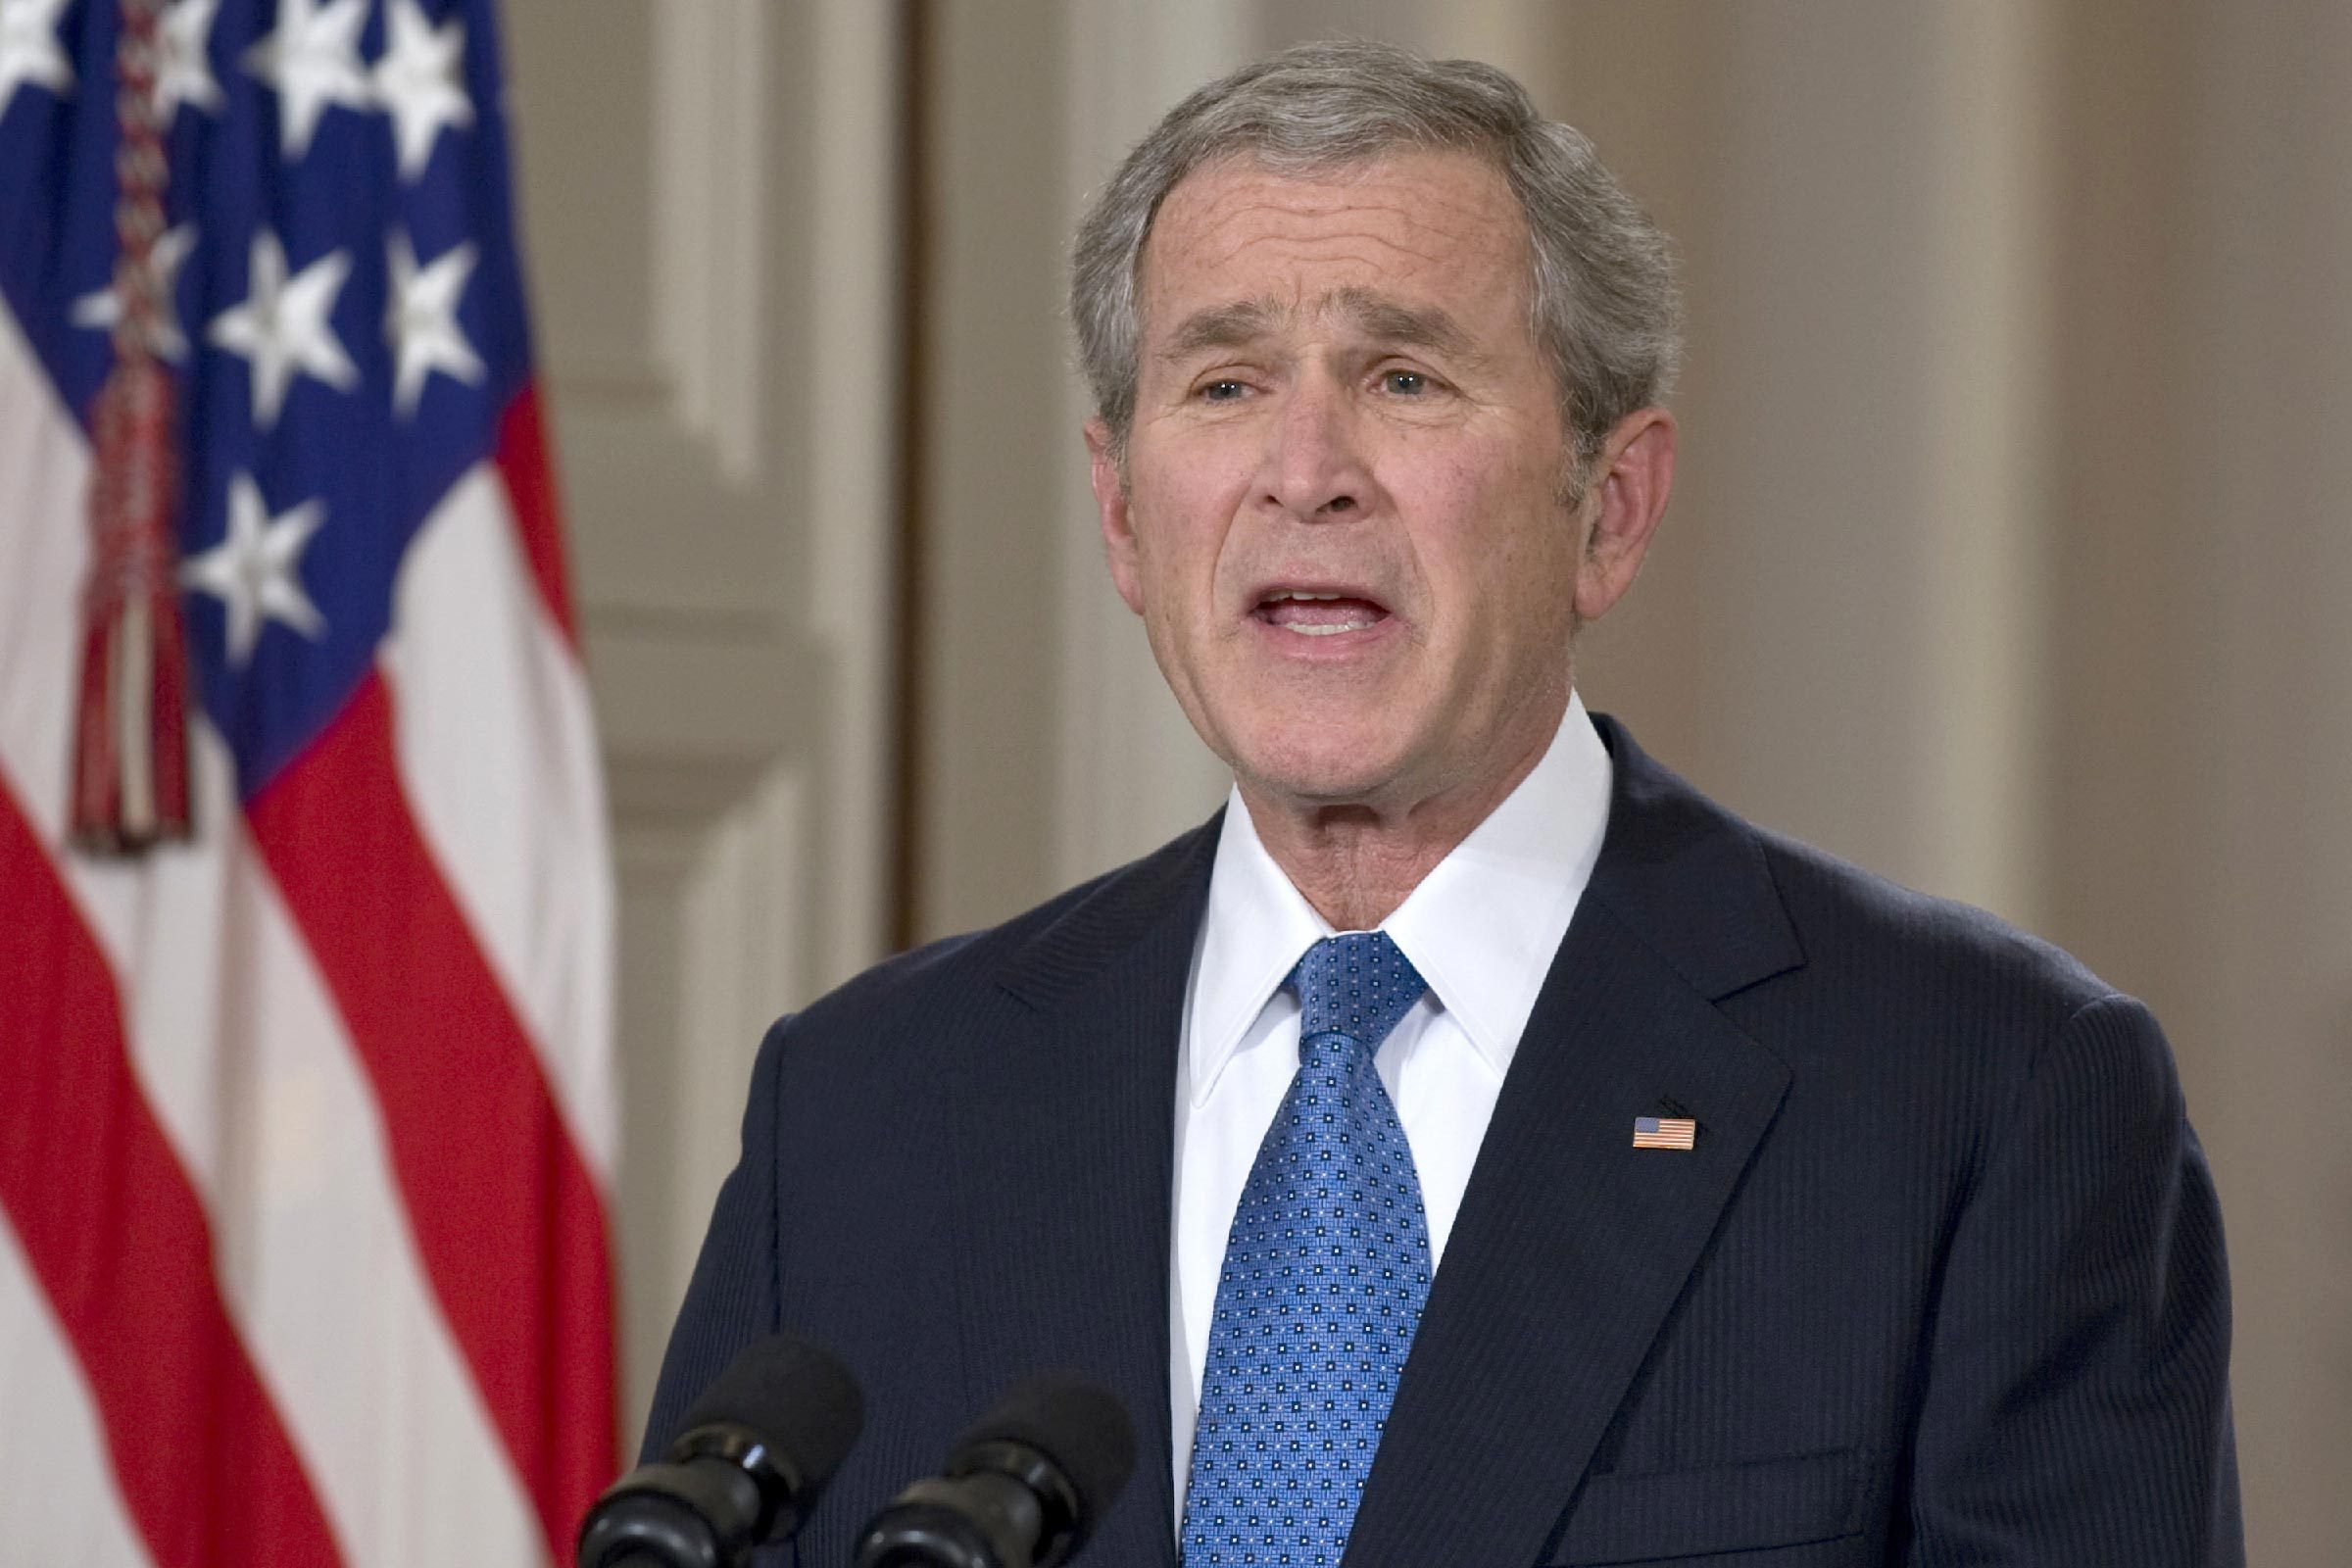 United States President George W. Bush Delivers His Farewell Speech to the Nation from the East Room of the White House in Washington, D.C., America - 15 Jan 2009